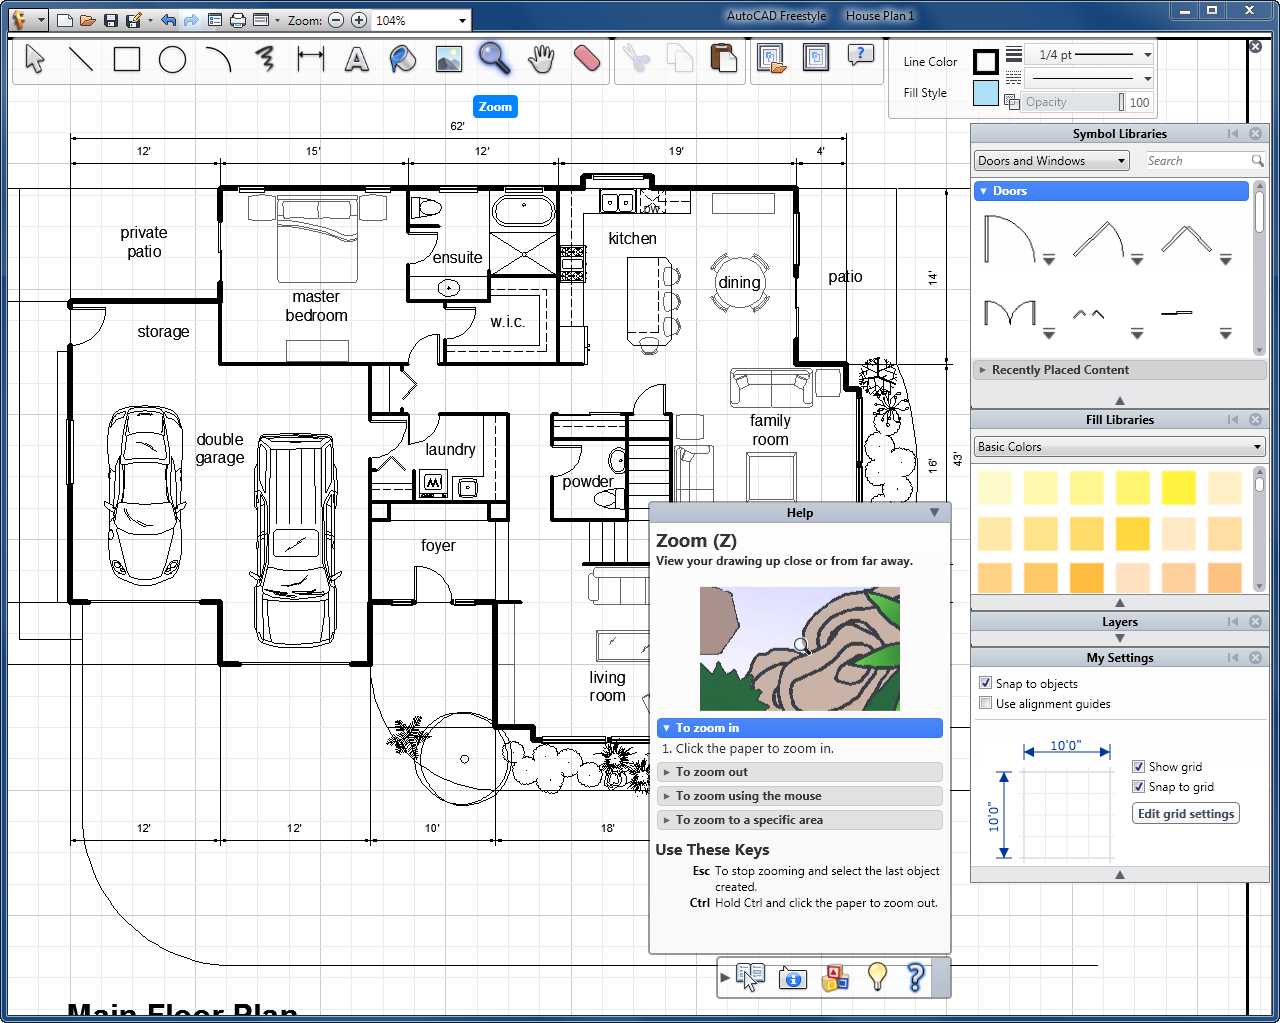 drawings, layouts, and plans that you can share. Click to enlarge